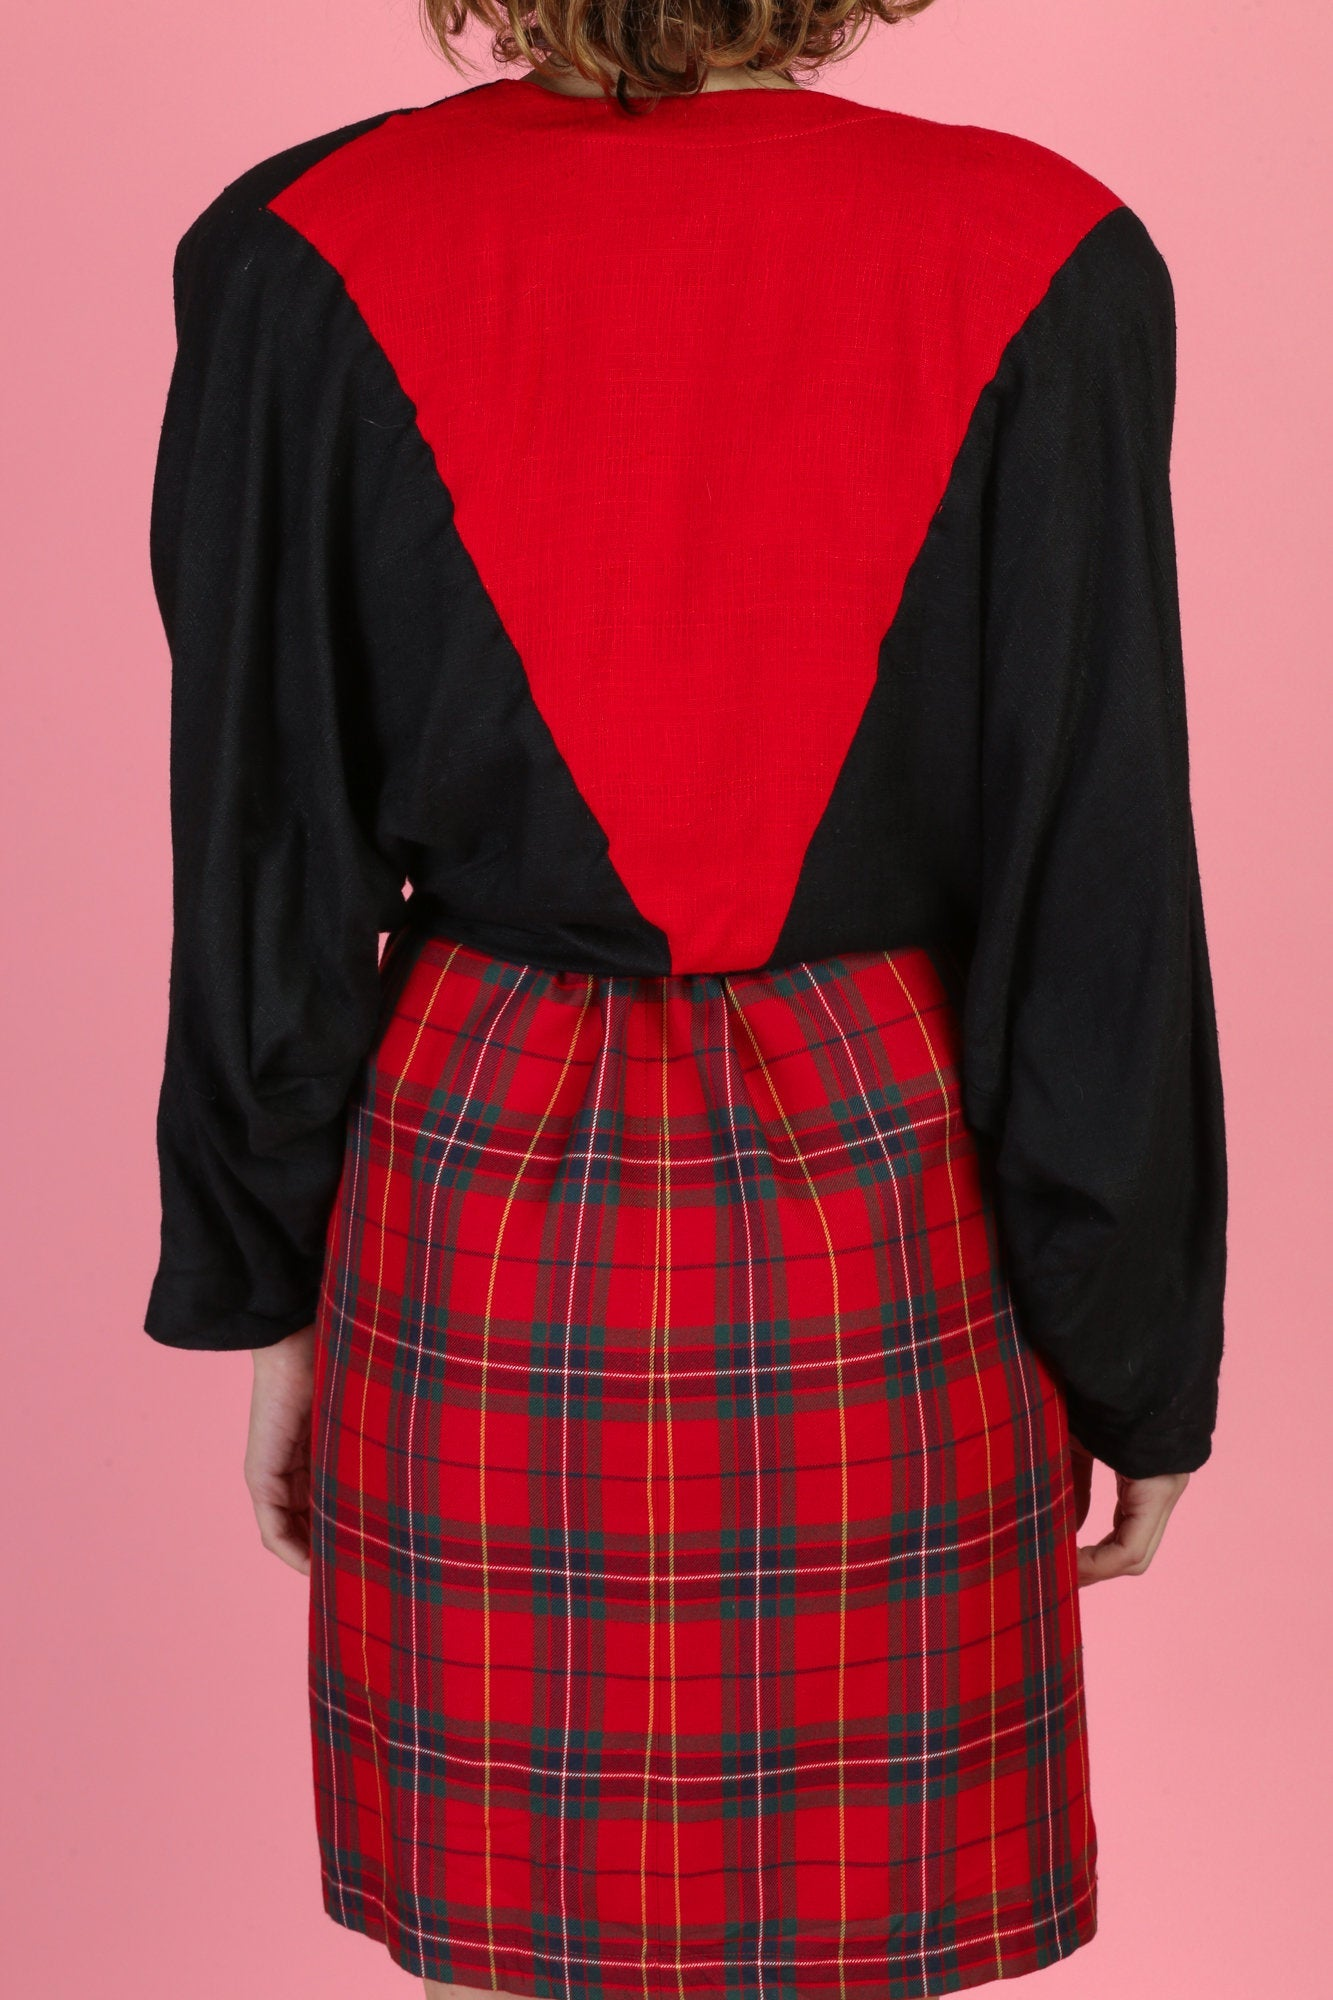 80s Red & Black Flax Tie Waist Blouse - Medium